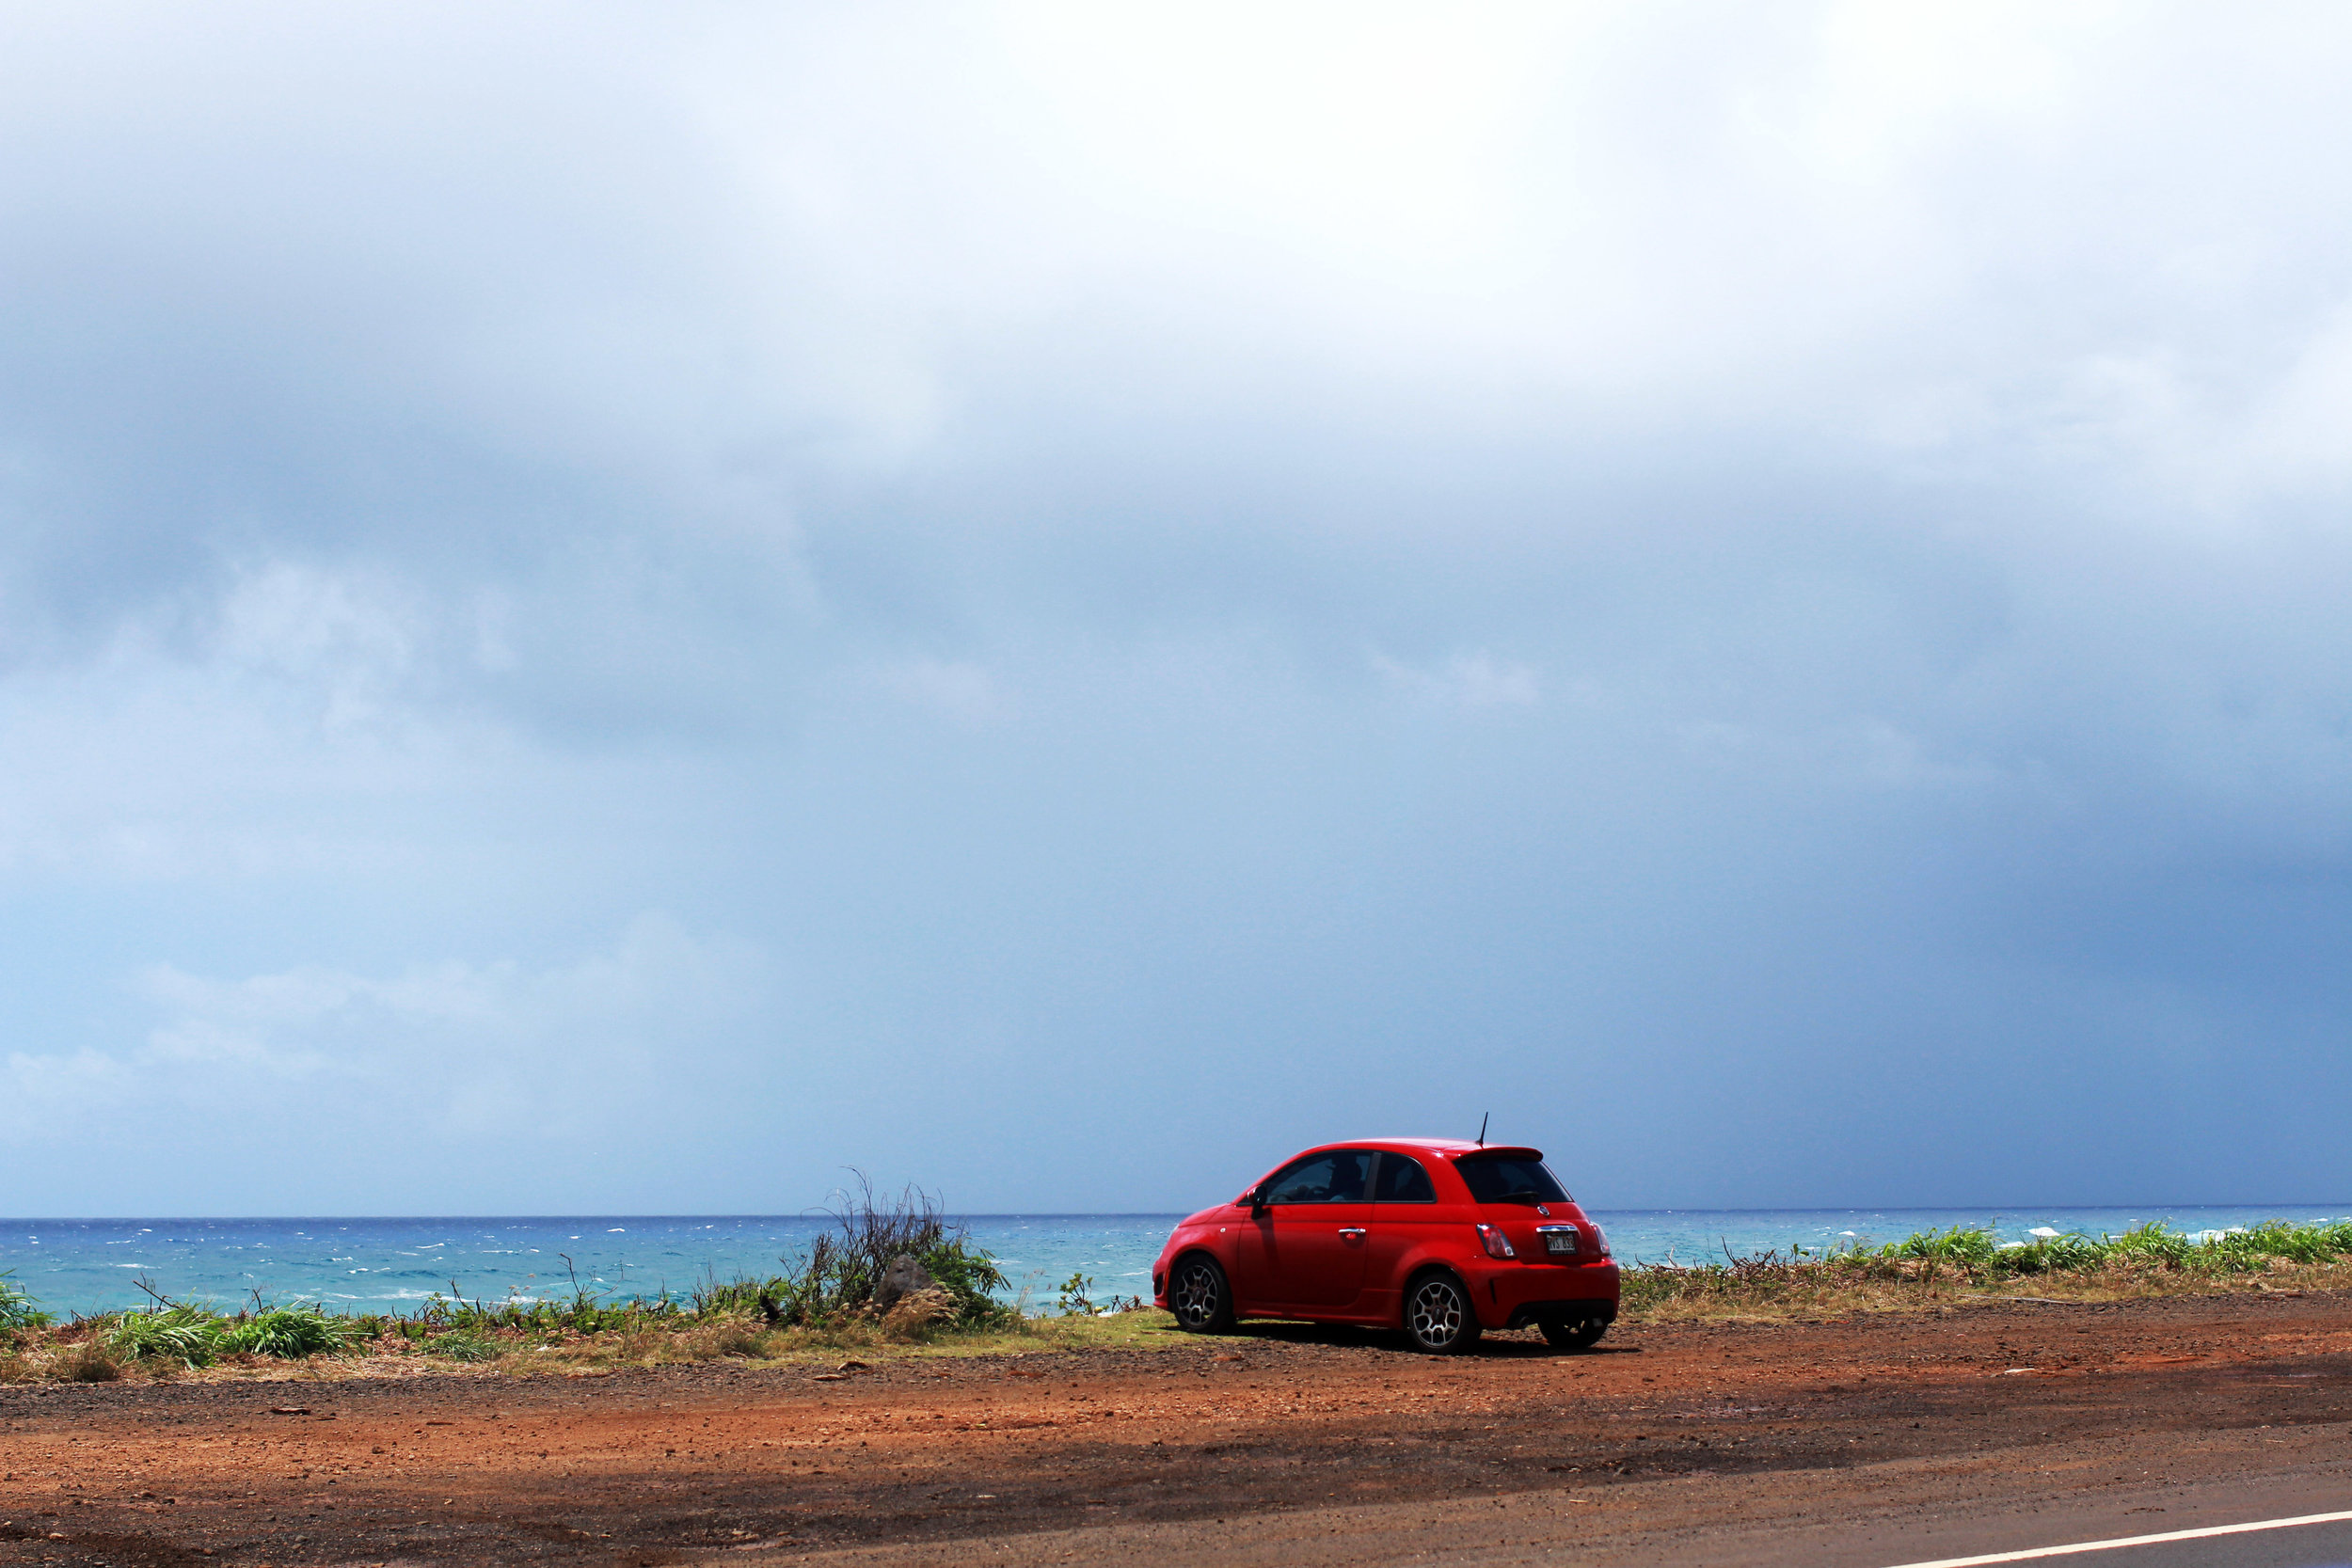 The Red Car,  Kauai, Hawaii